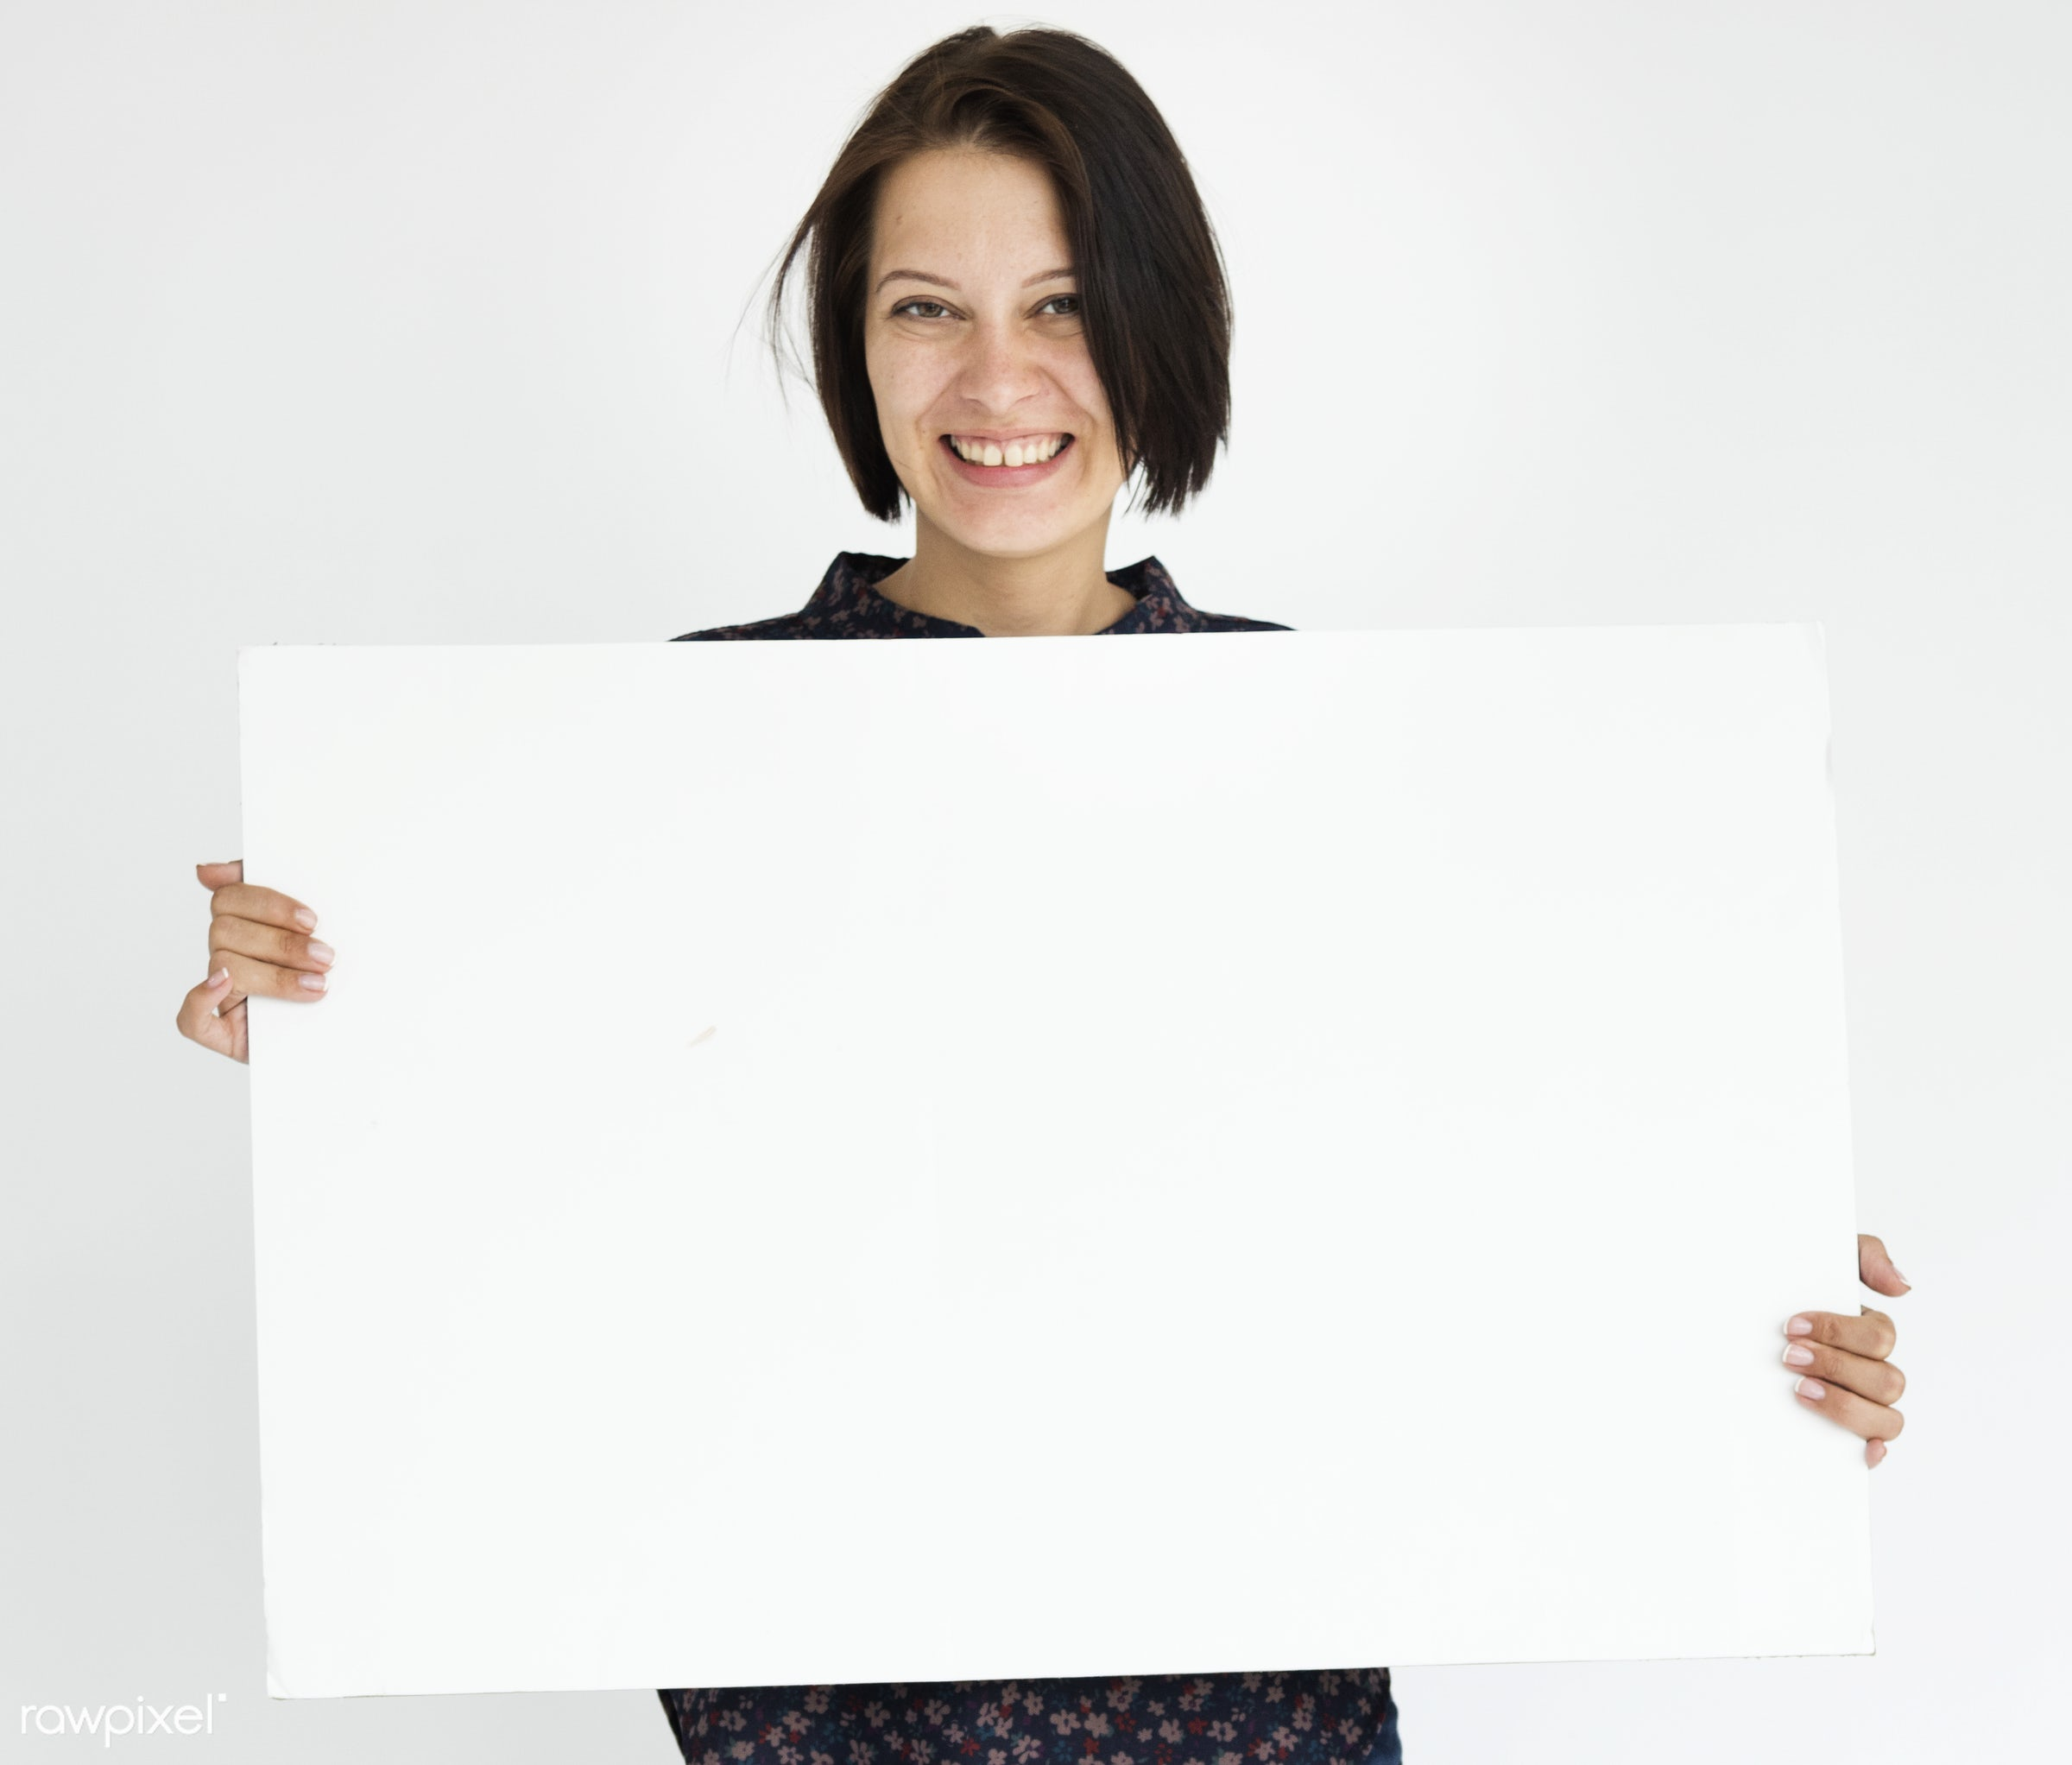 studio, expression, copy space, holding, people, positivity, caucasian, placard, girl, solo, woman, casual, empty, showing,...